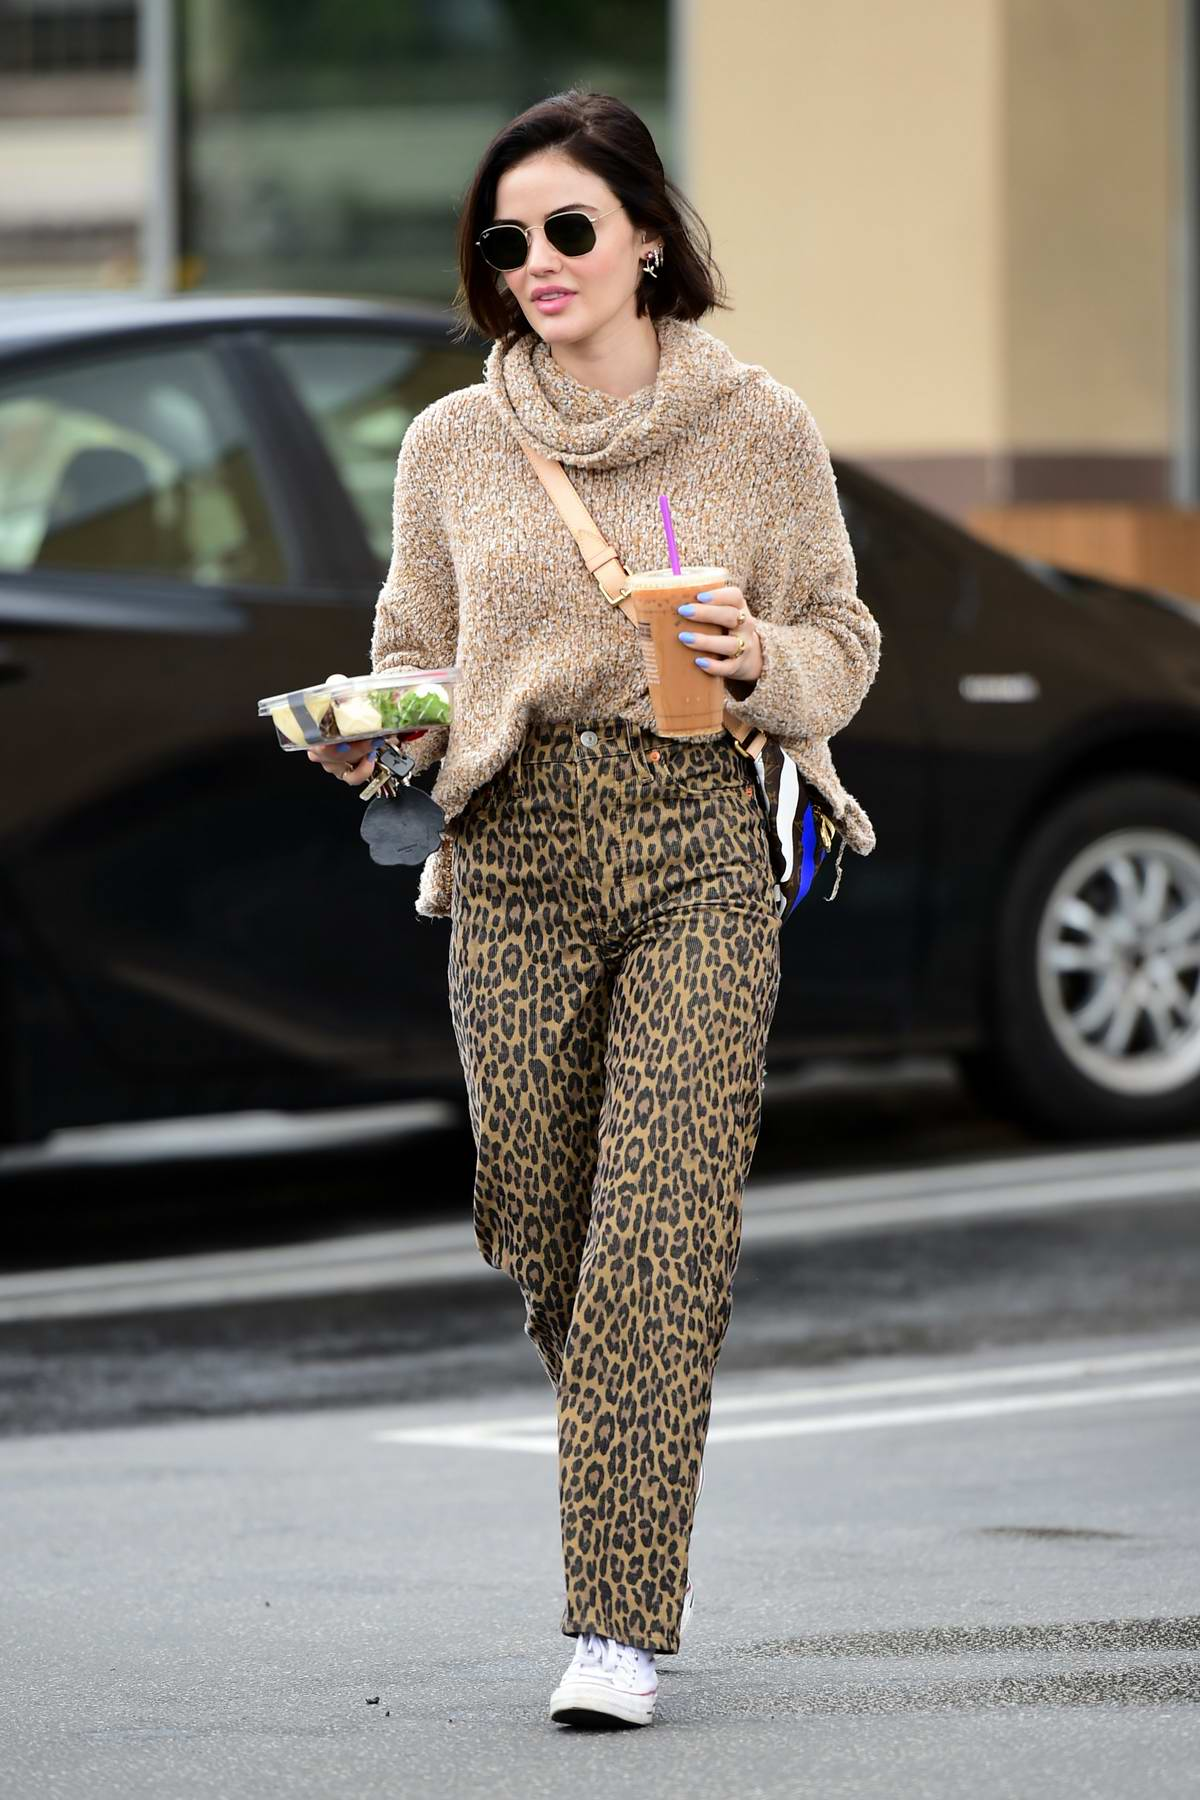 Lucy Hale looks pretty in a knitted sweater and animal print pants while out for an iced coffee in Los Angeles